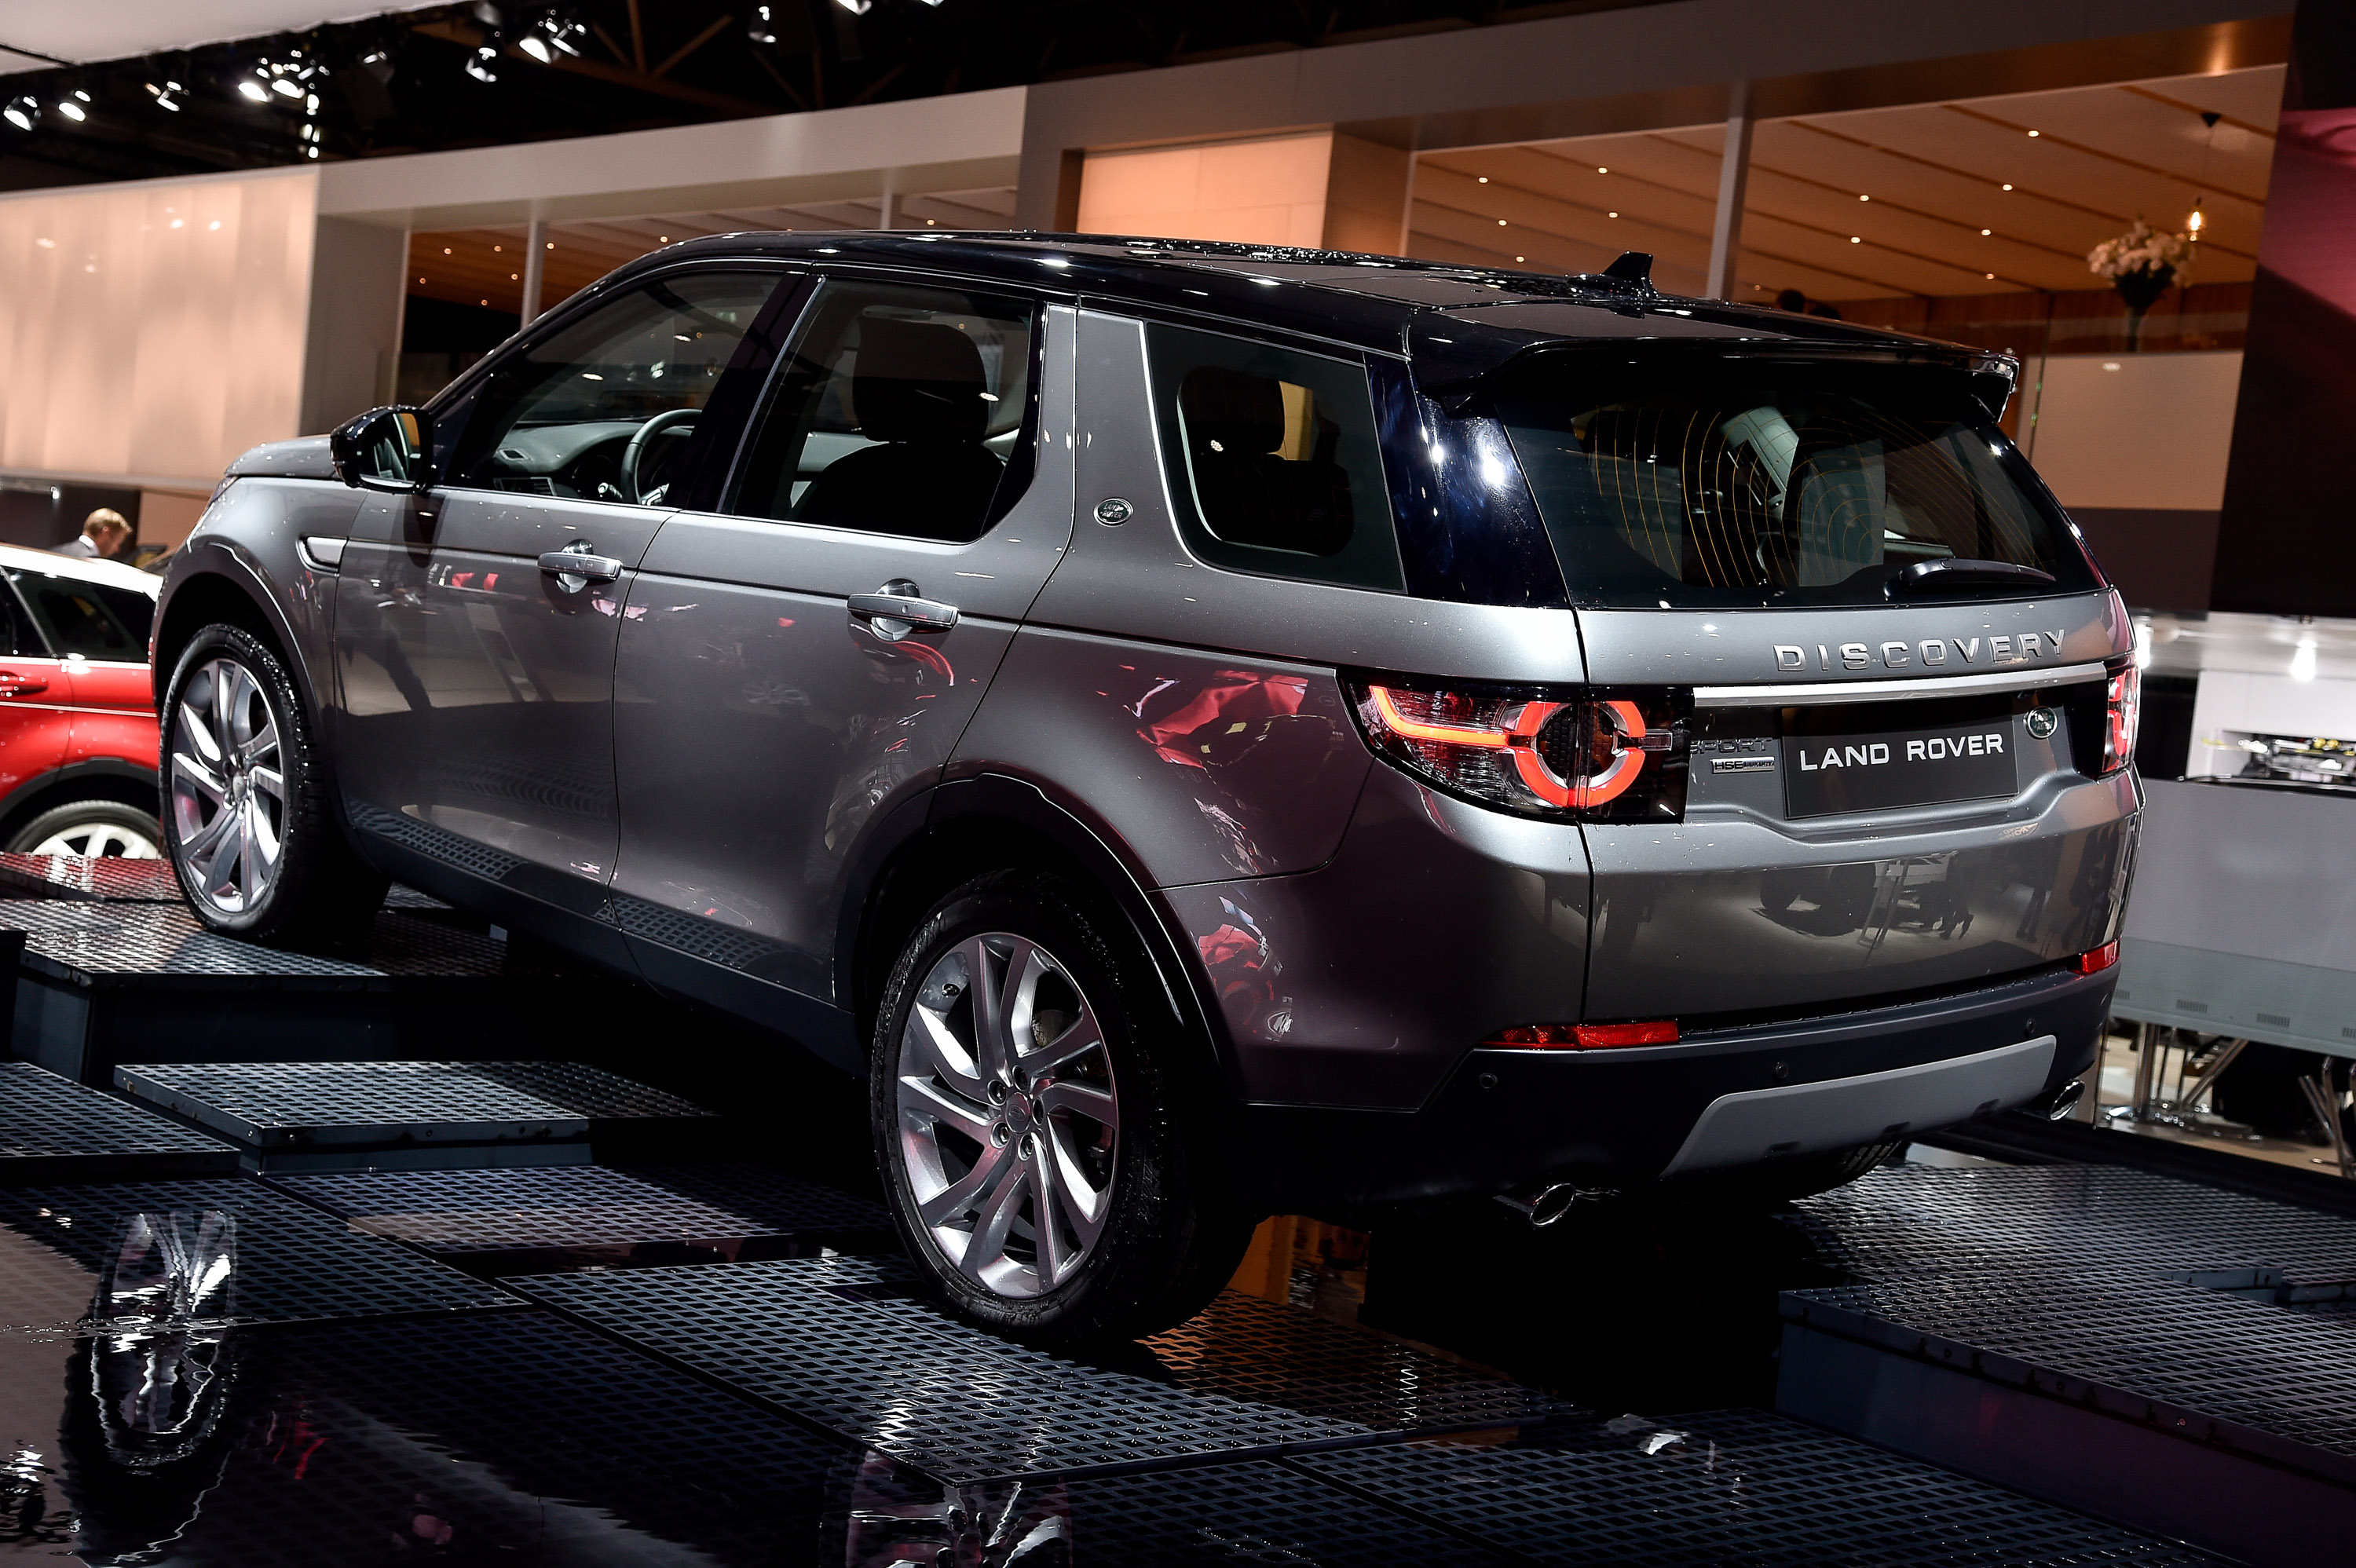 Land Rover Discovery Sport Paris 2014 Picture